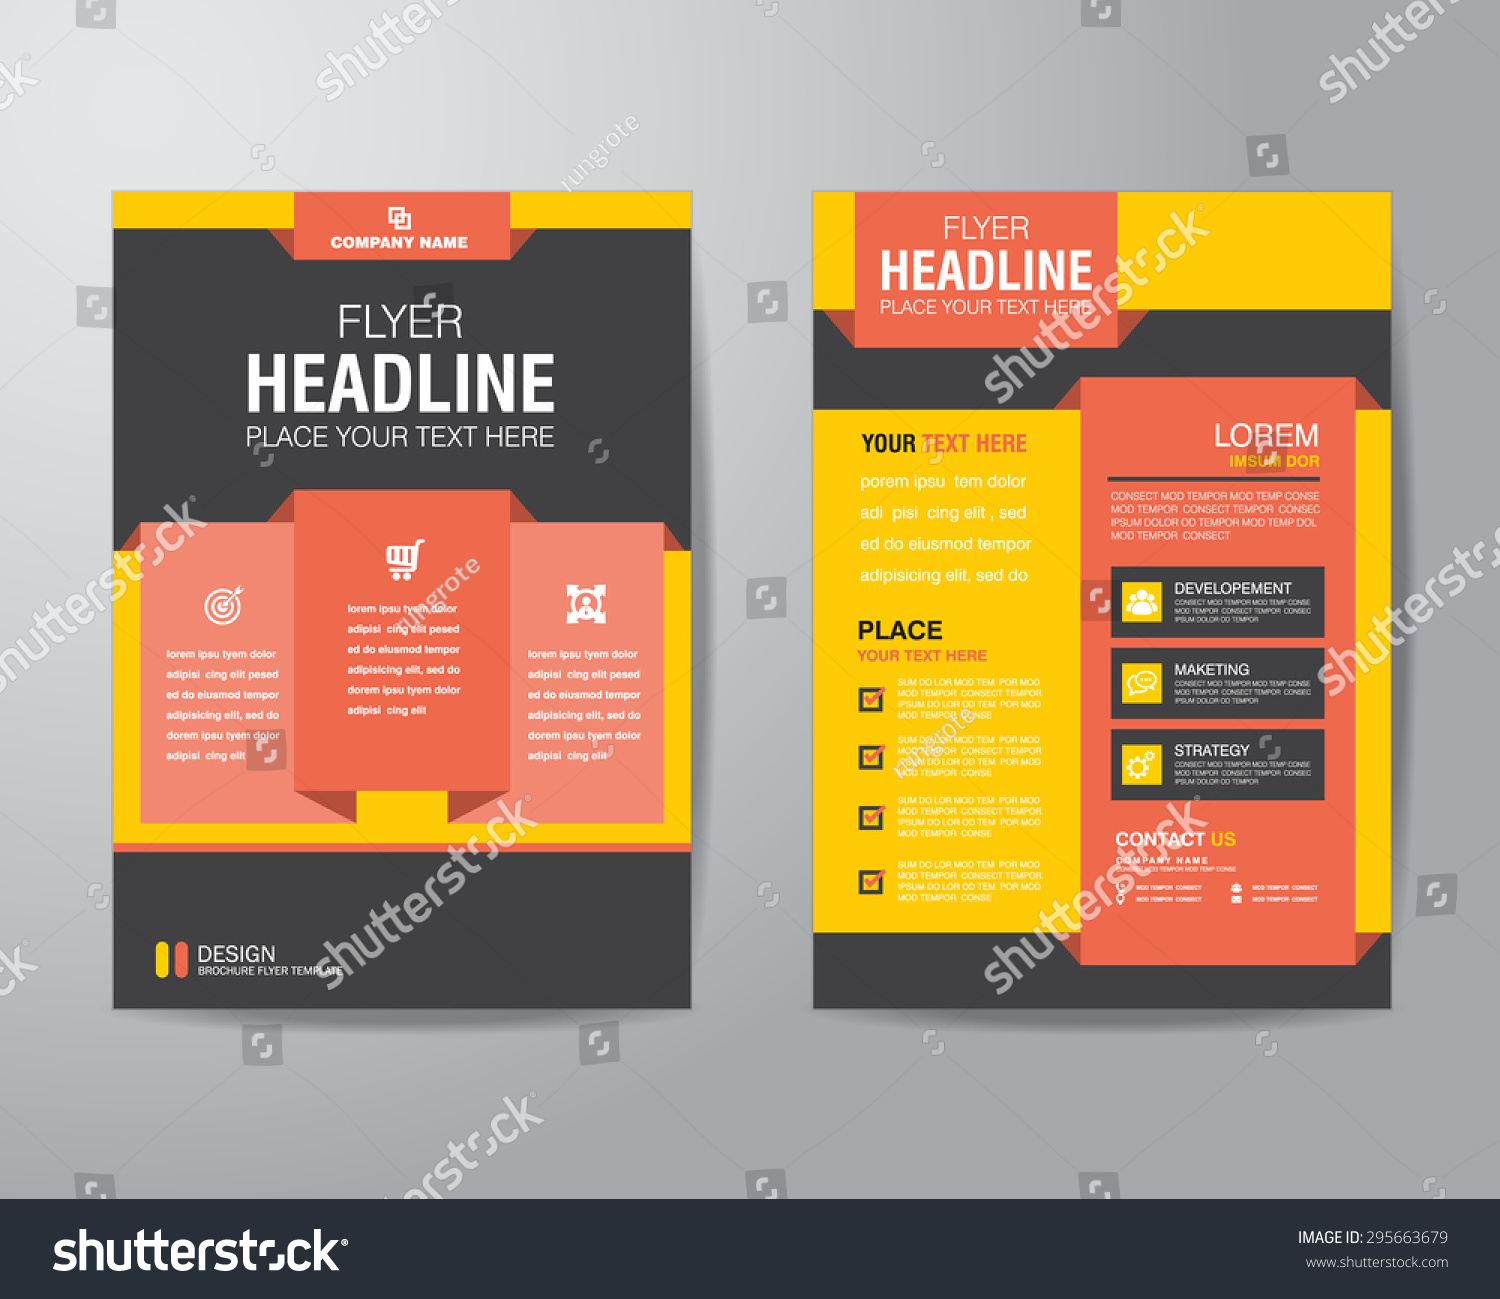 Royalty Free Corporate Brochure Flyer Design Layout 295663679